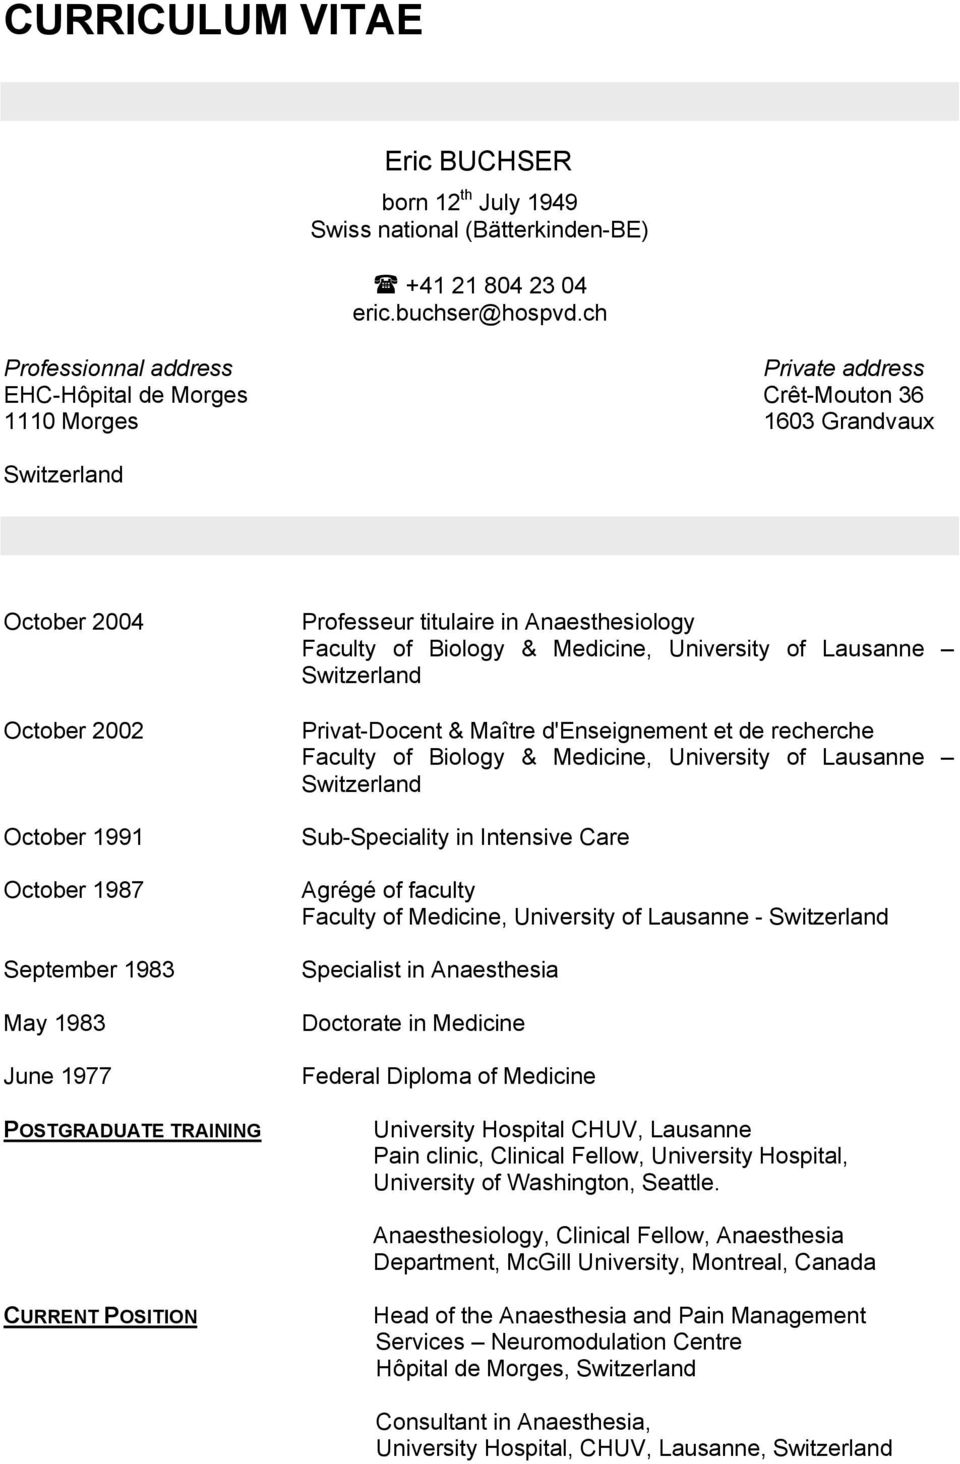 1977 POSTGRADUATE TRAINING Professeur titulaire in Anaesthesiology Faculty of Biology & Medicine, University of Lausanne Switzerland Privat-Docent & Maître d'enseignement et de recherche Faculty of